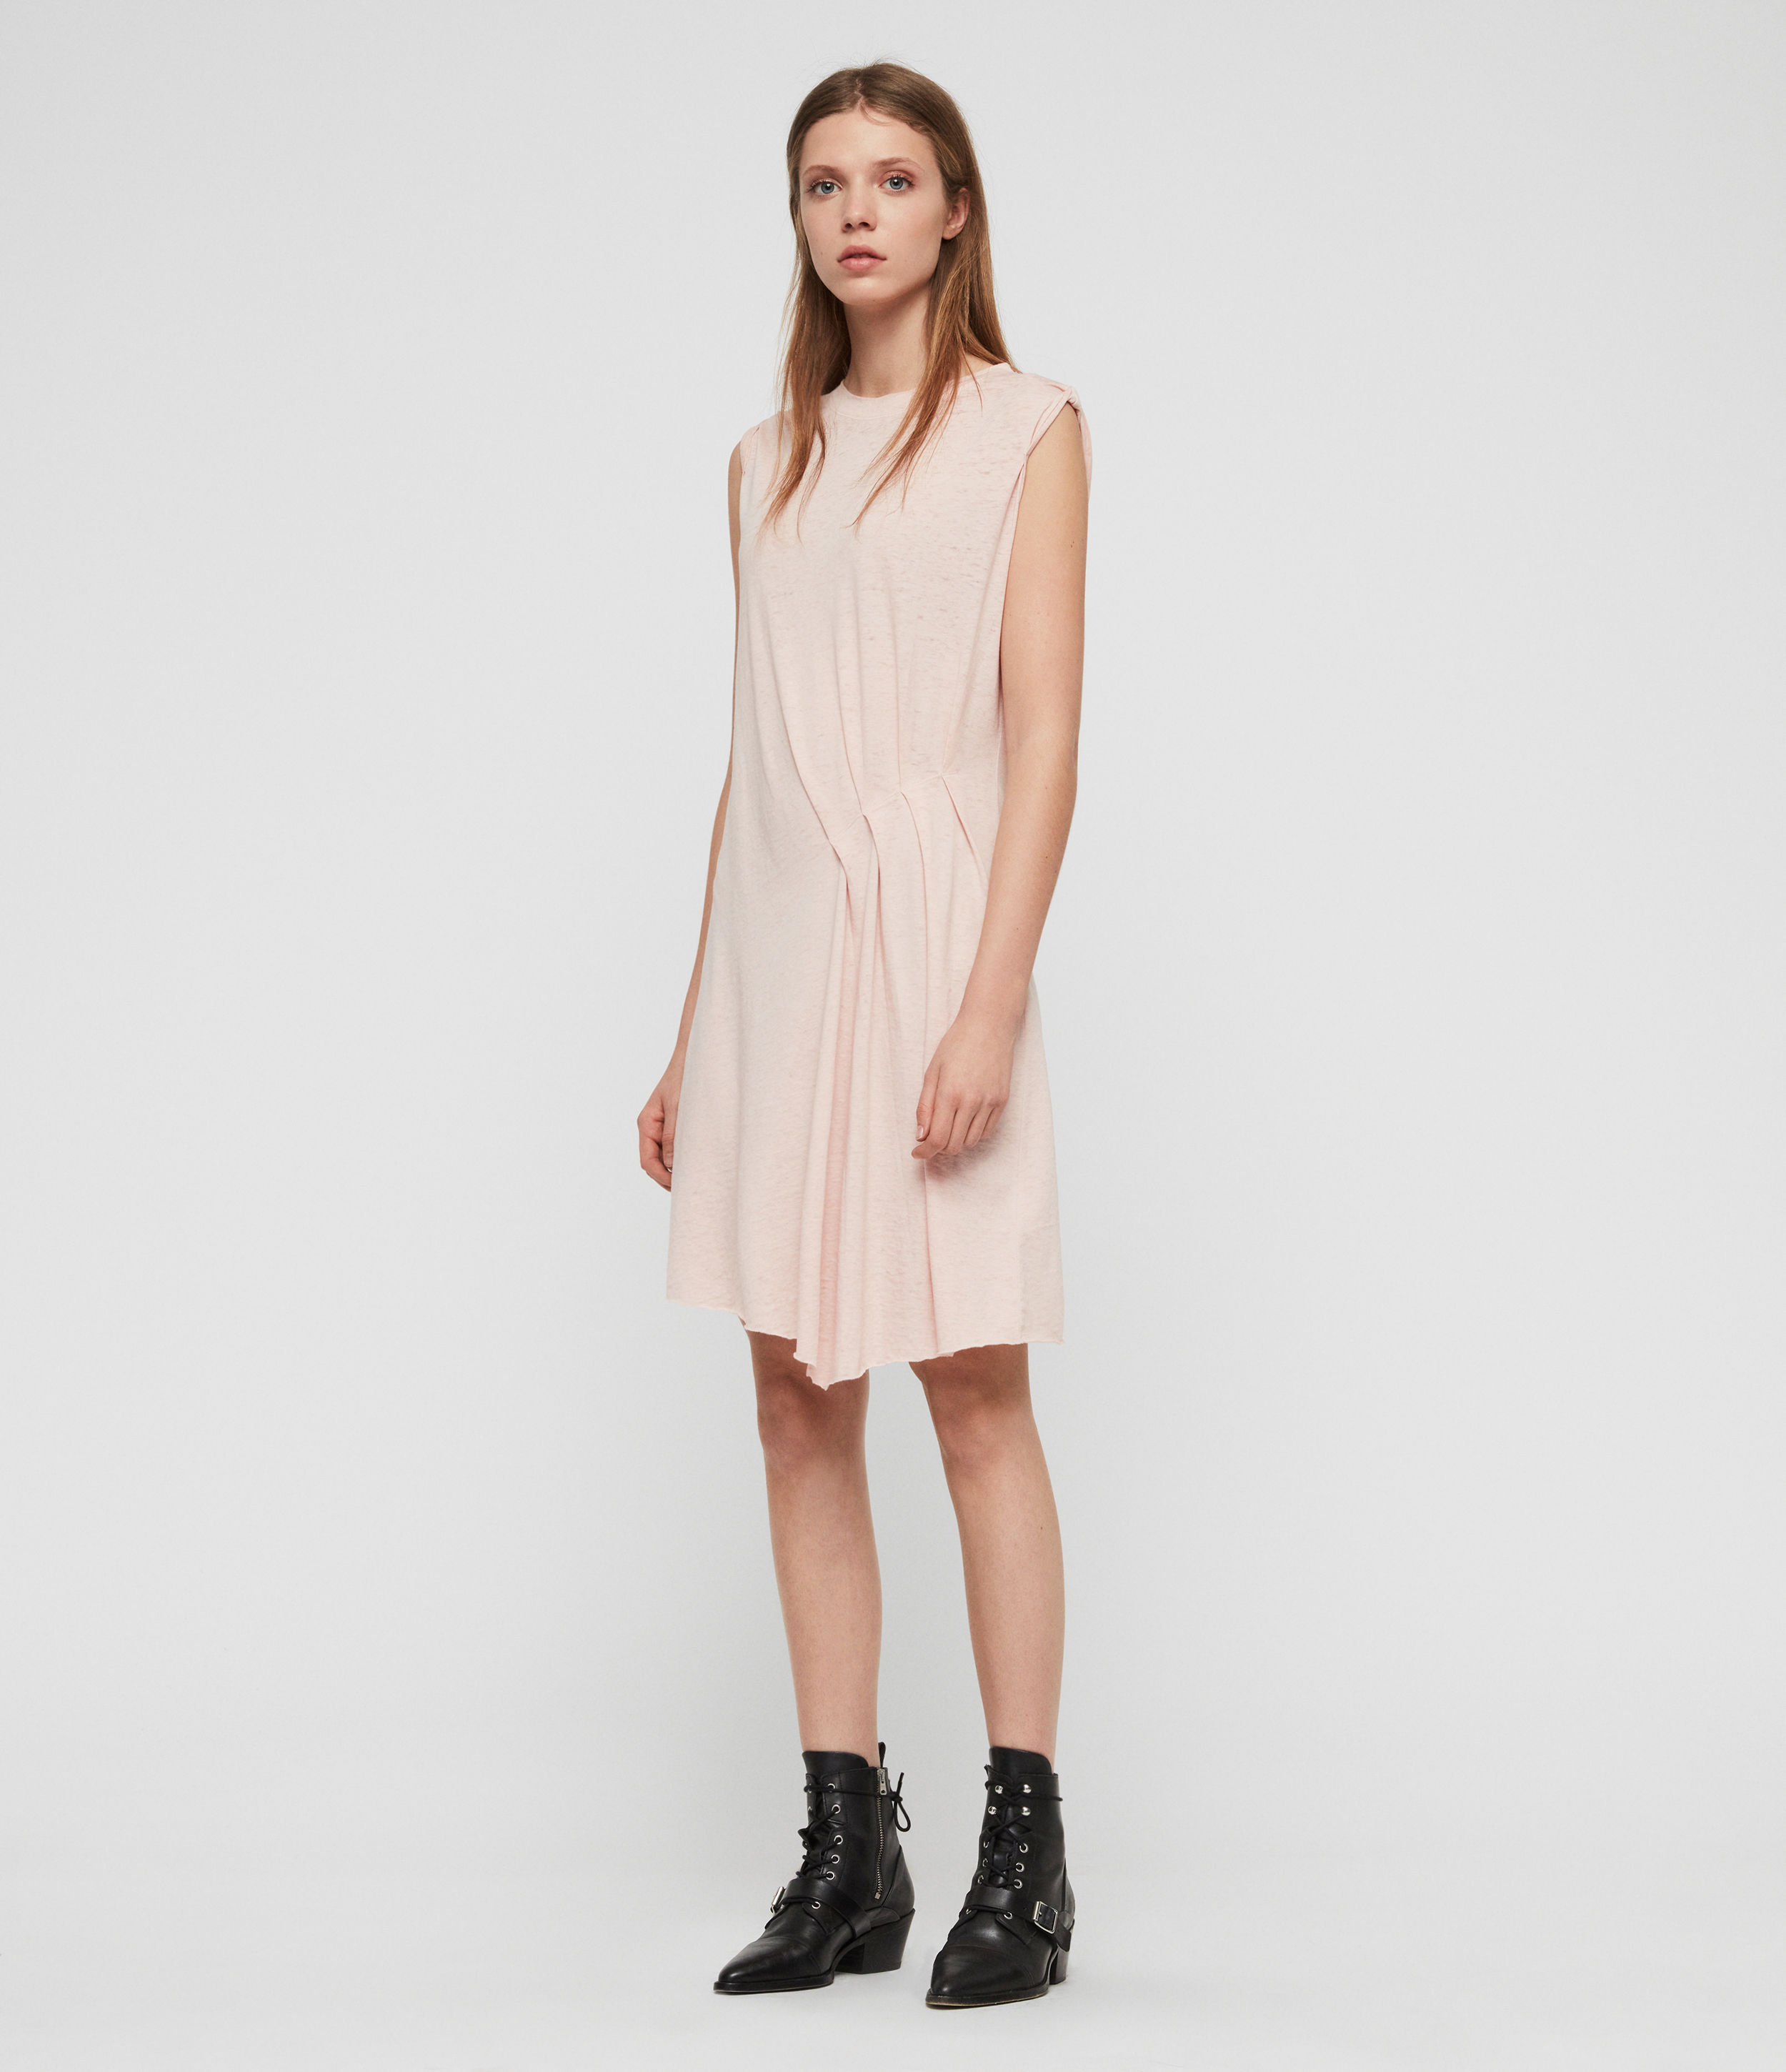 AllSaints Women's Cotton Regular Fit Duma Dress, Pink, Size: M